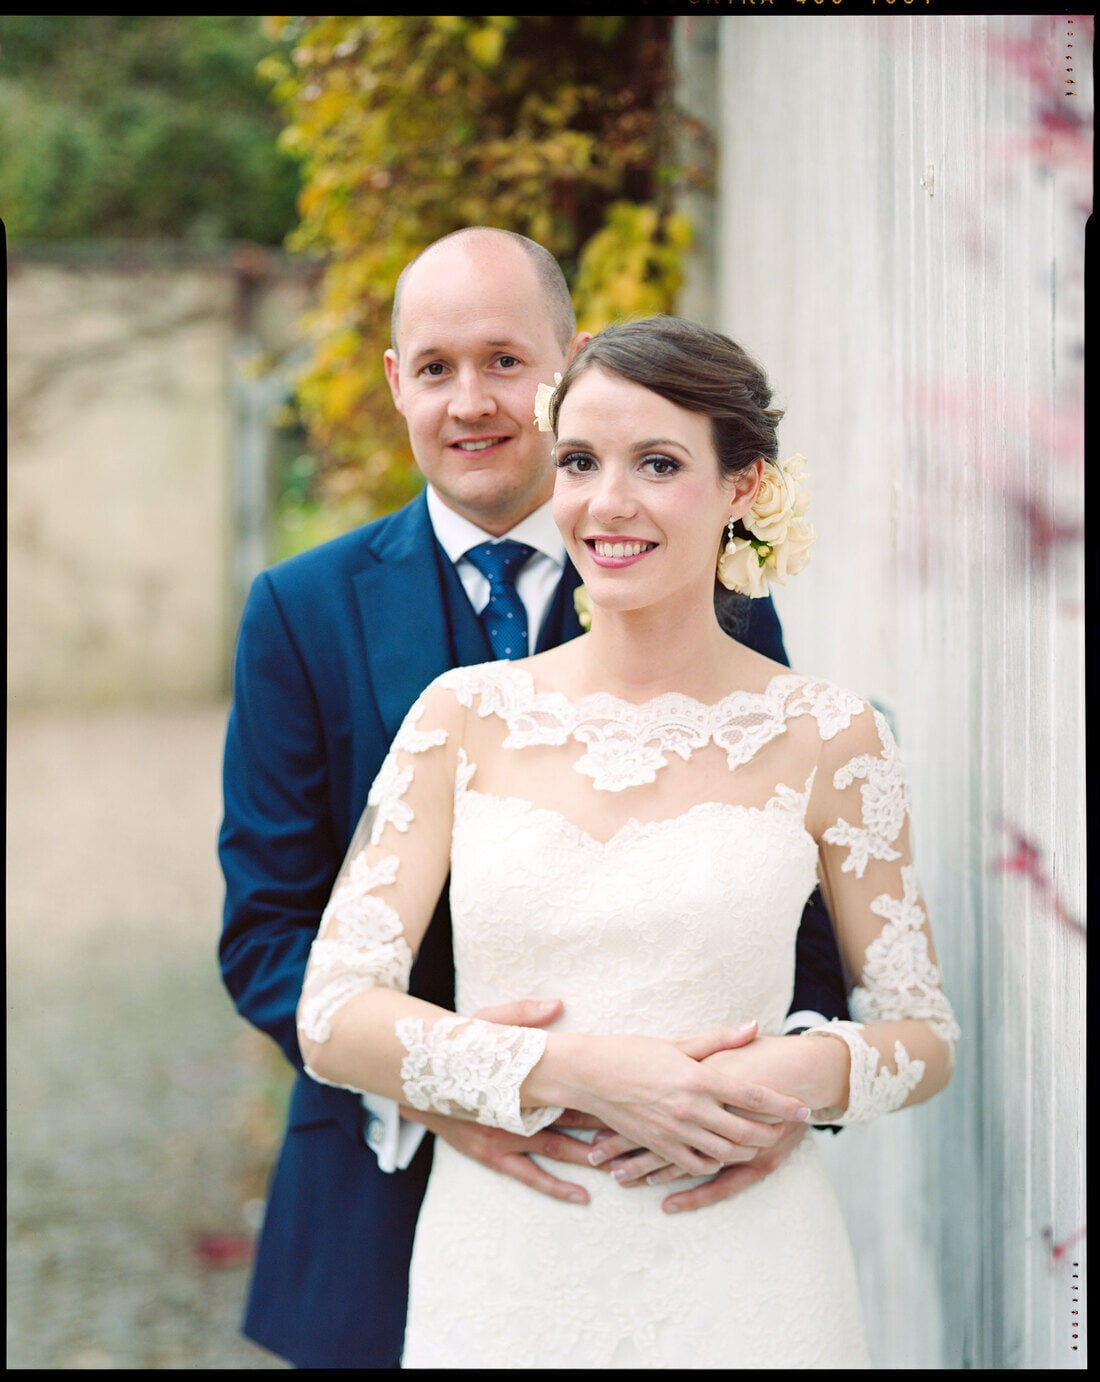 laura and mike pose for their northbrook park wedding photographer